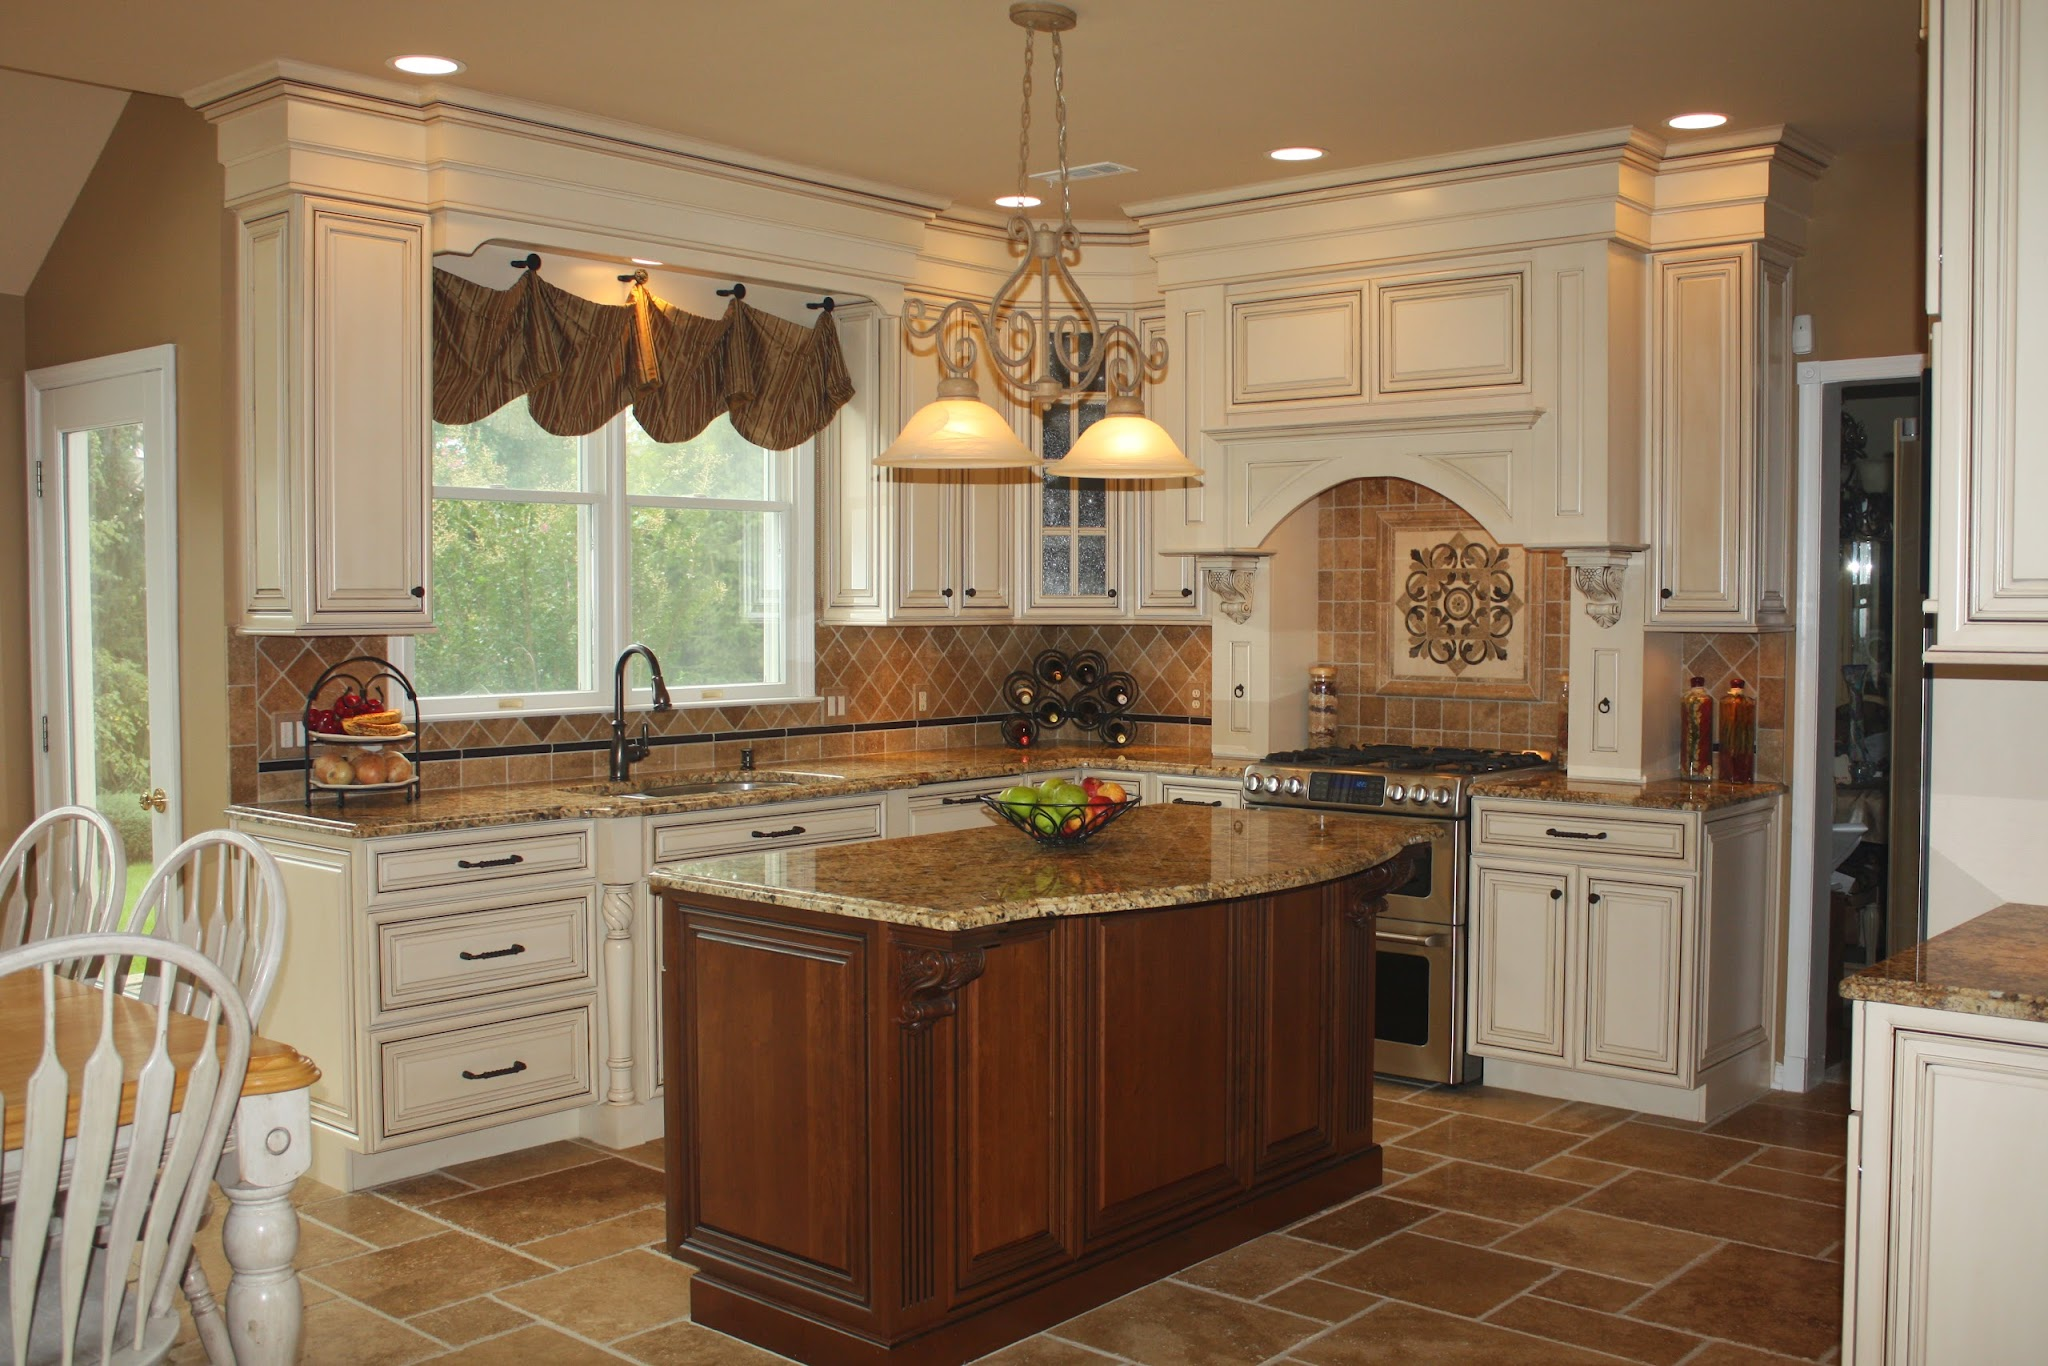 Houzz kitchen dreams house furniture for Kitchen modeling ideas